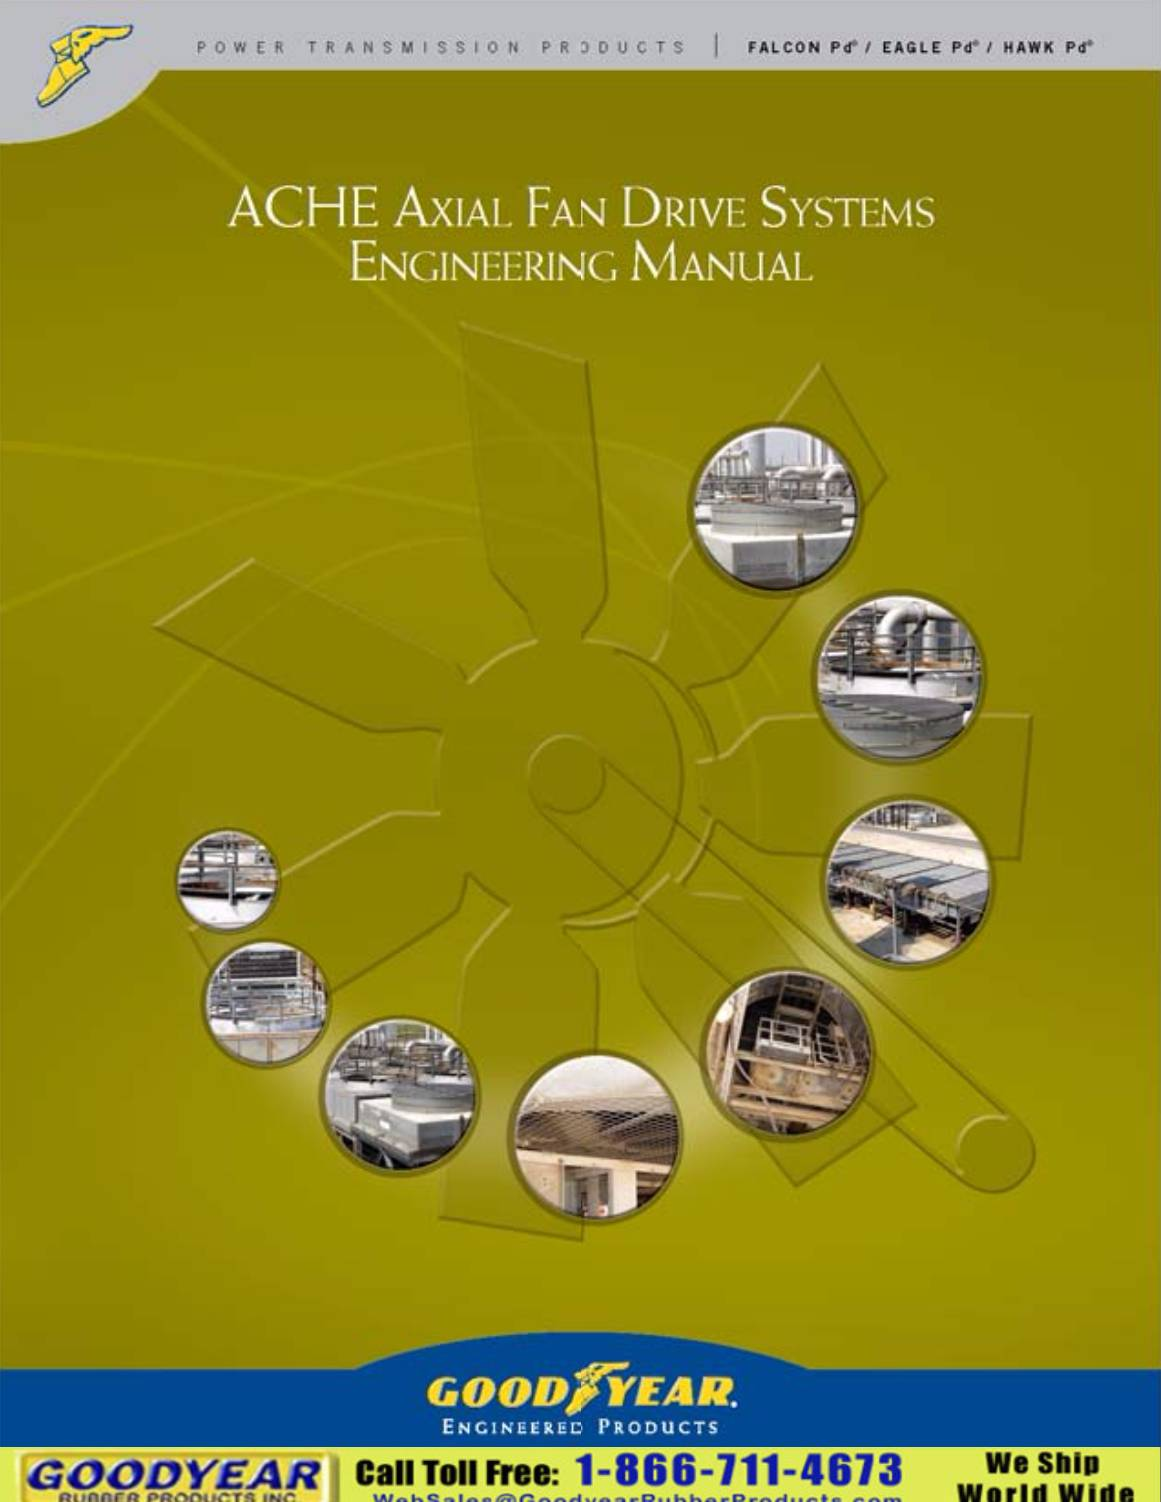 Goodyear ACHE Axial Fan Drive Systems Design Manual